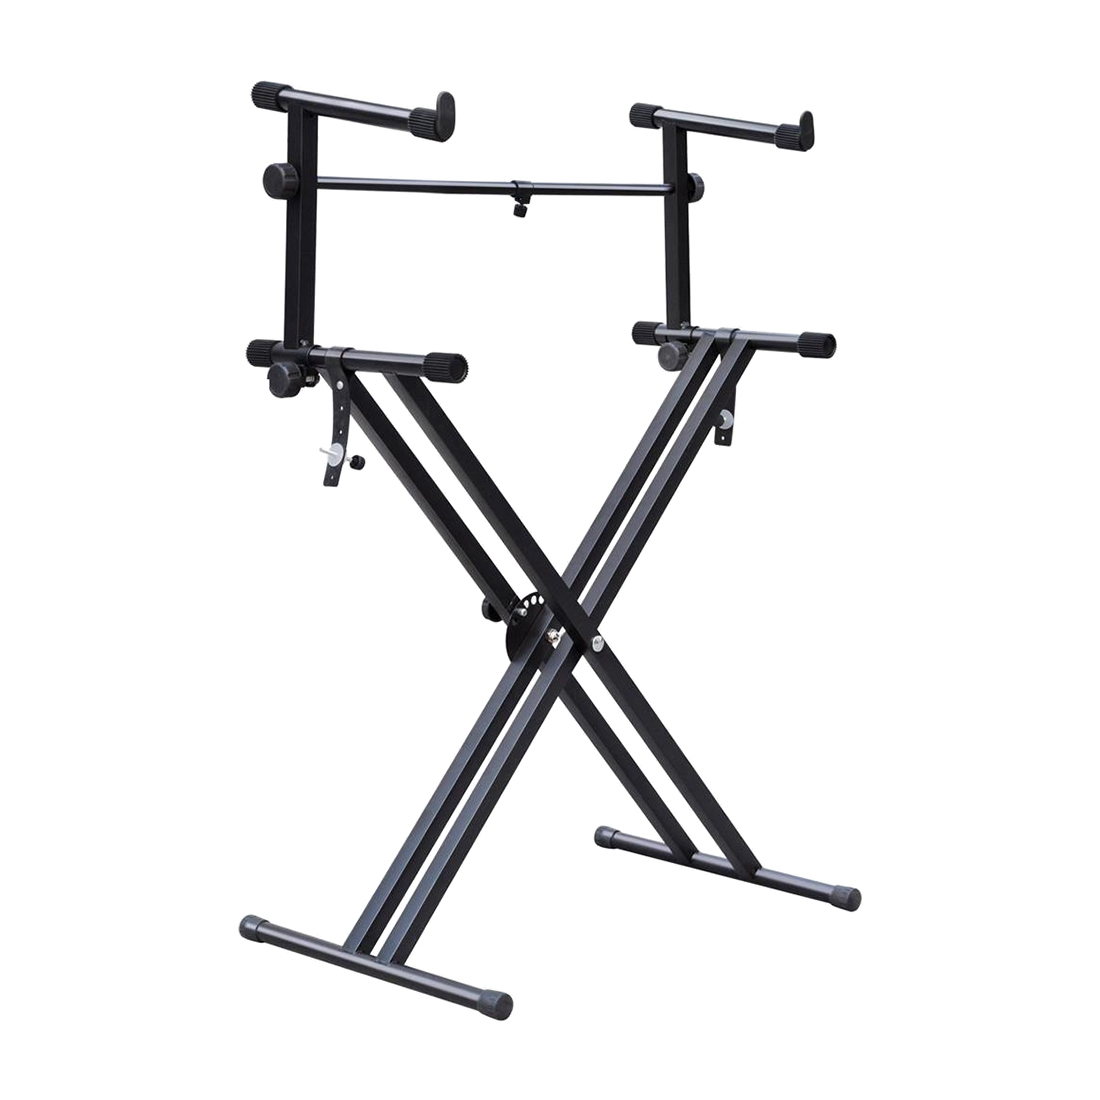 quality heavy duty x style dual keyboard stand electronic piano double 2 ti x1r1 ebay. Black Bedroom Furniture Sets. Home Design Ideas